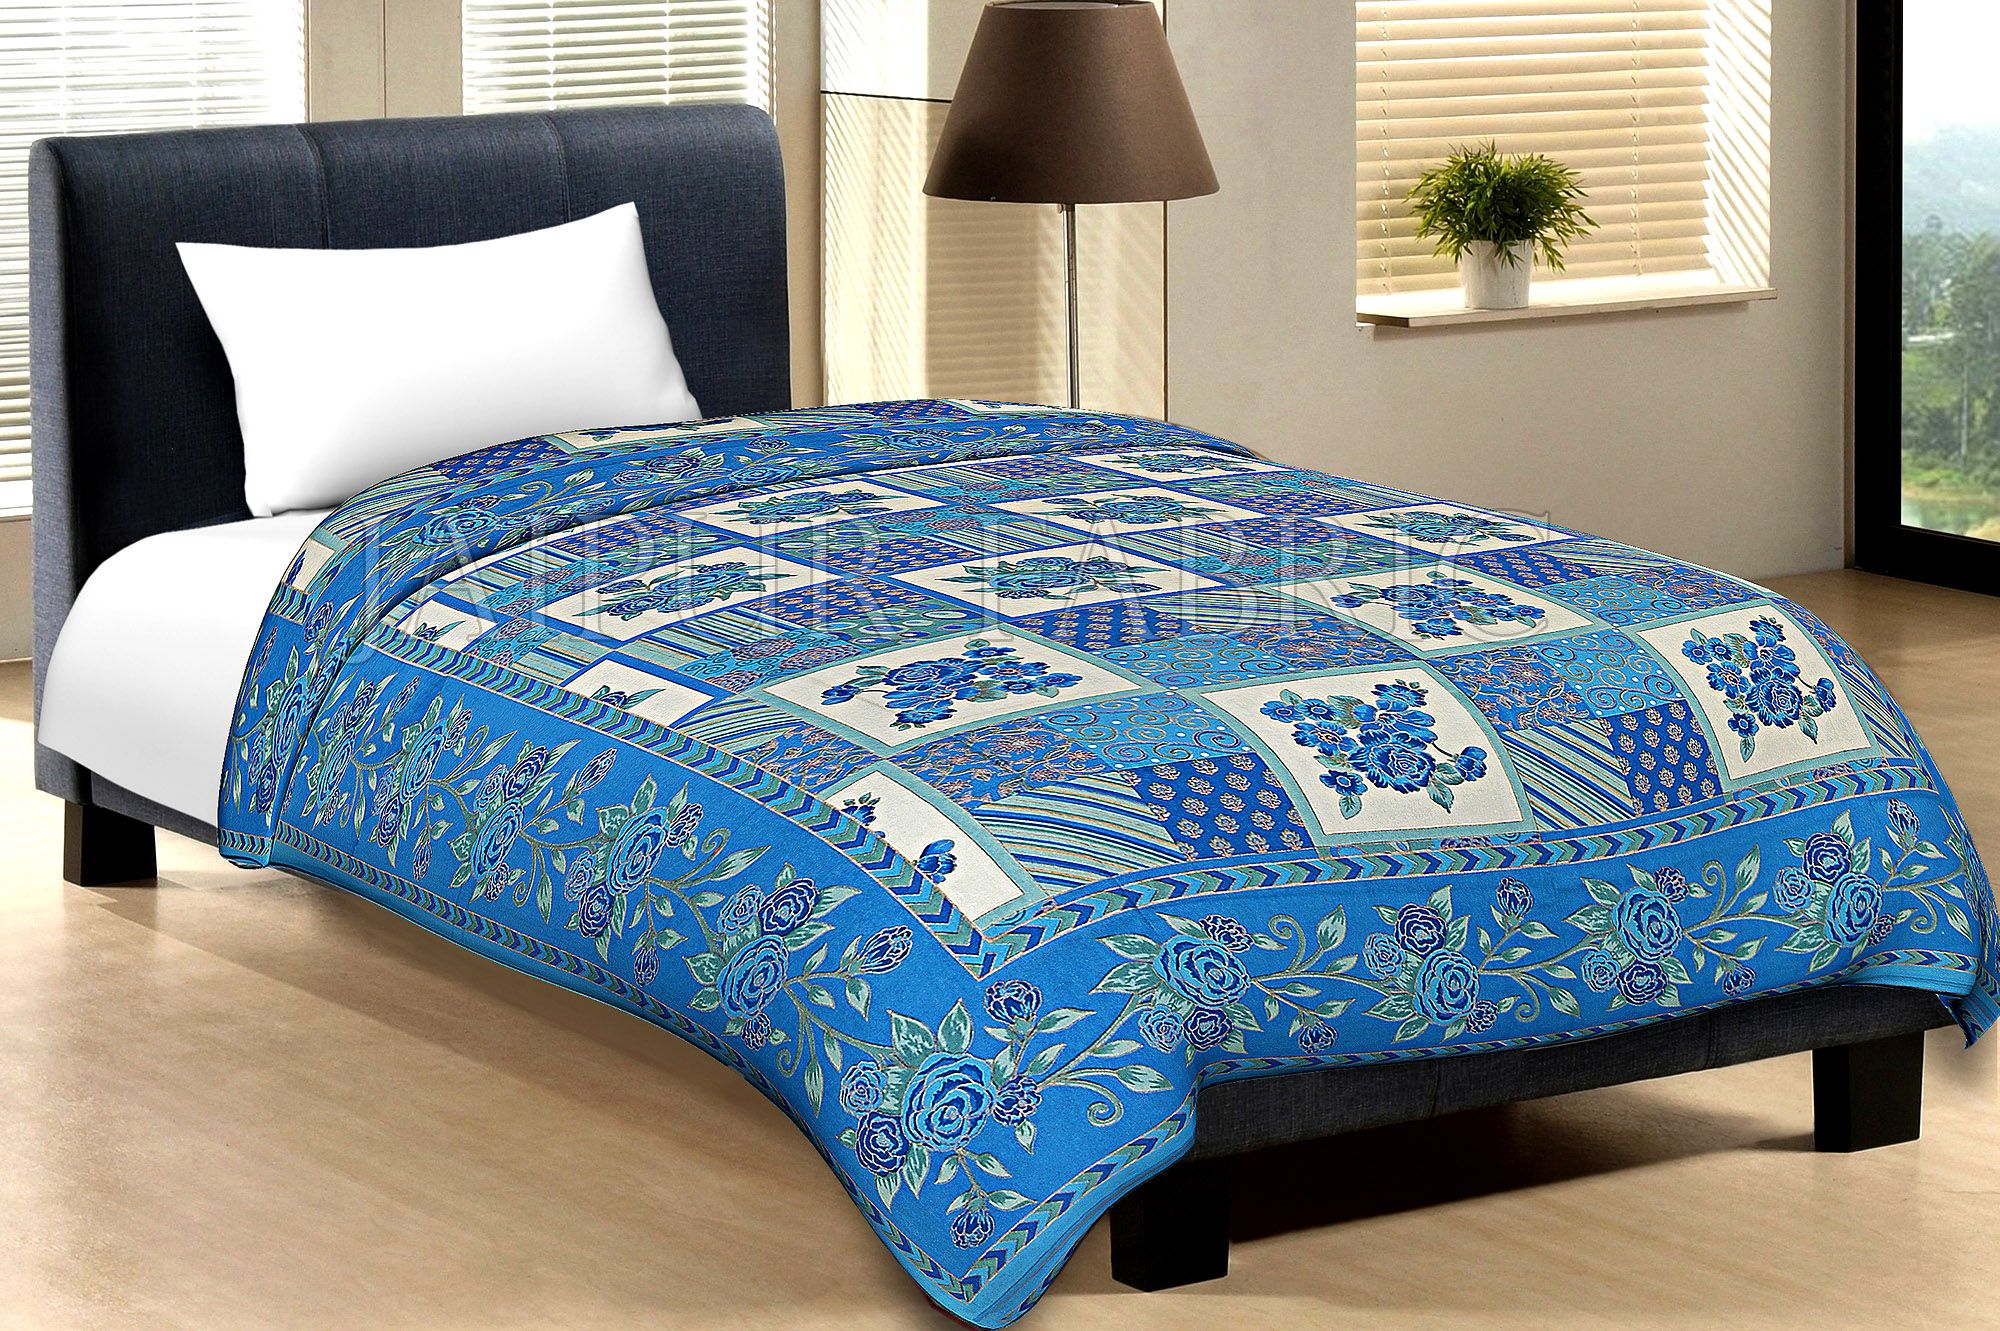 Blue Border Cream Base Flower And Check With Golden Shining Print Cotton Single Bed Sheet With Out Pillow Cover